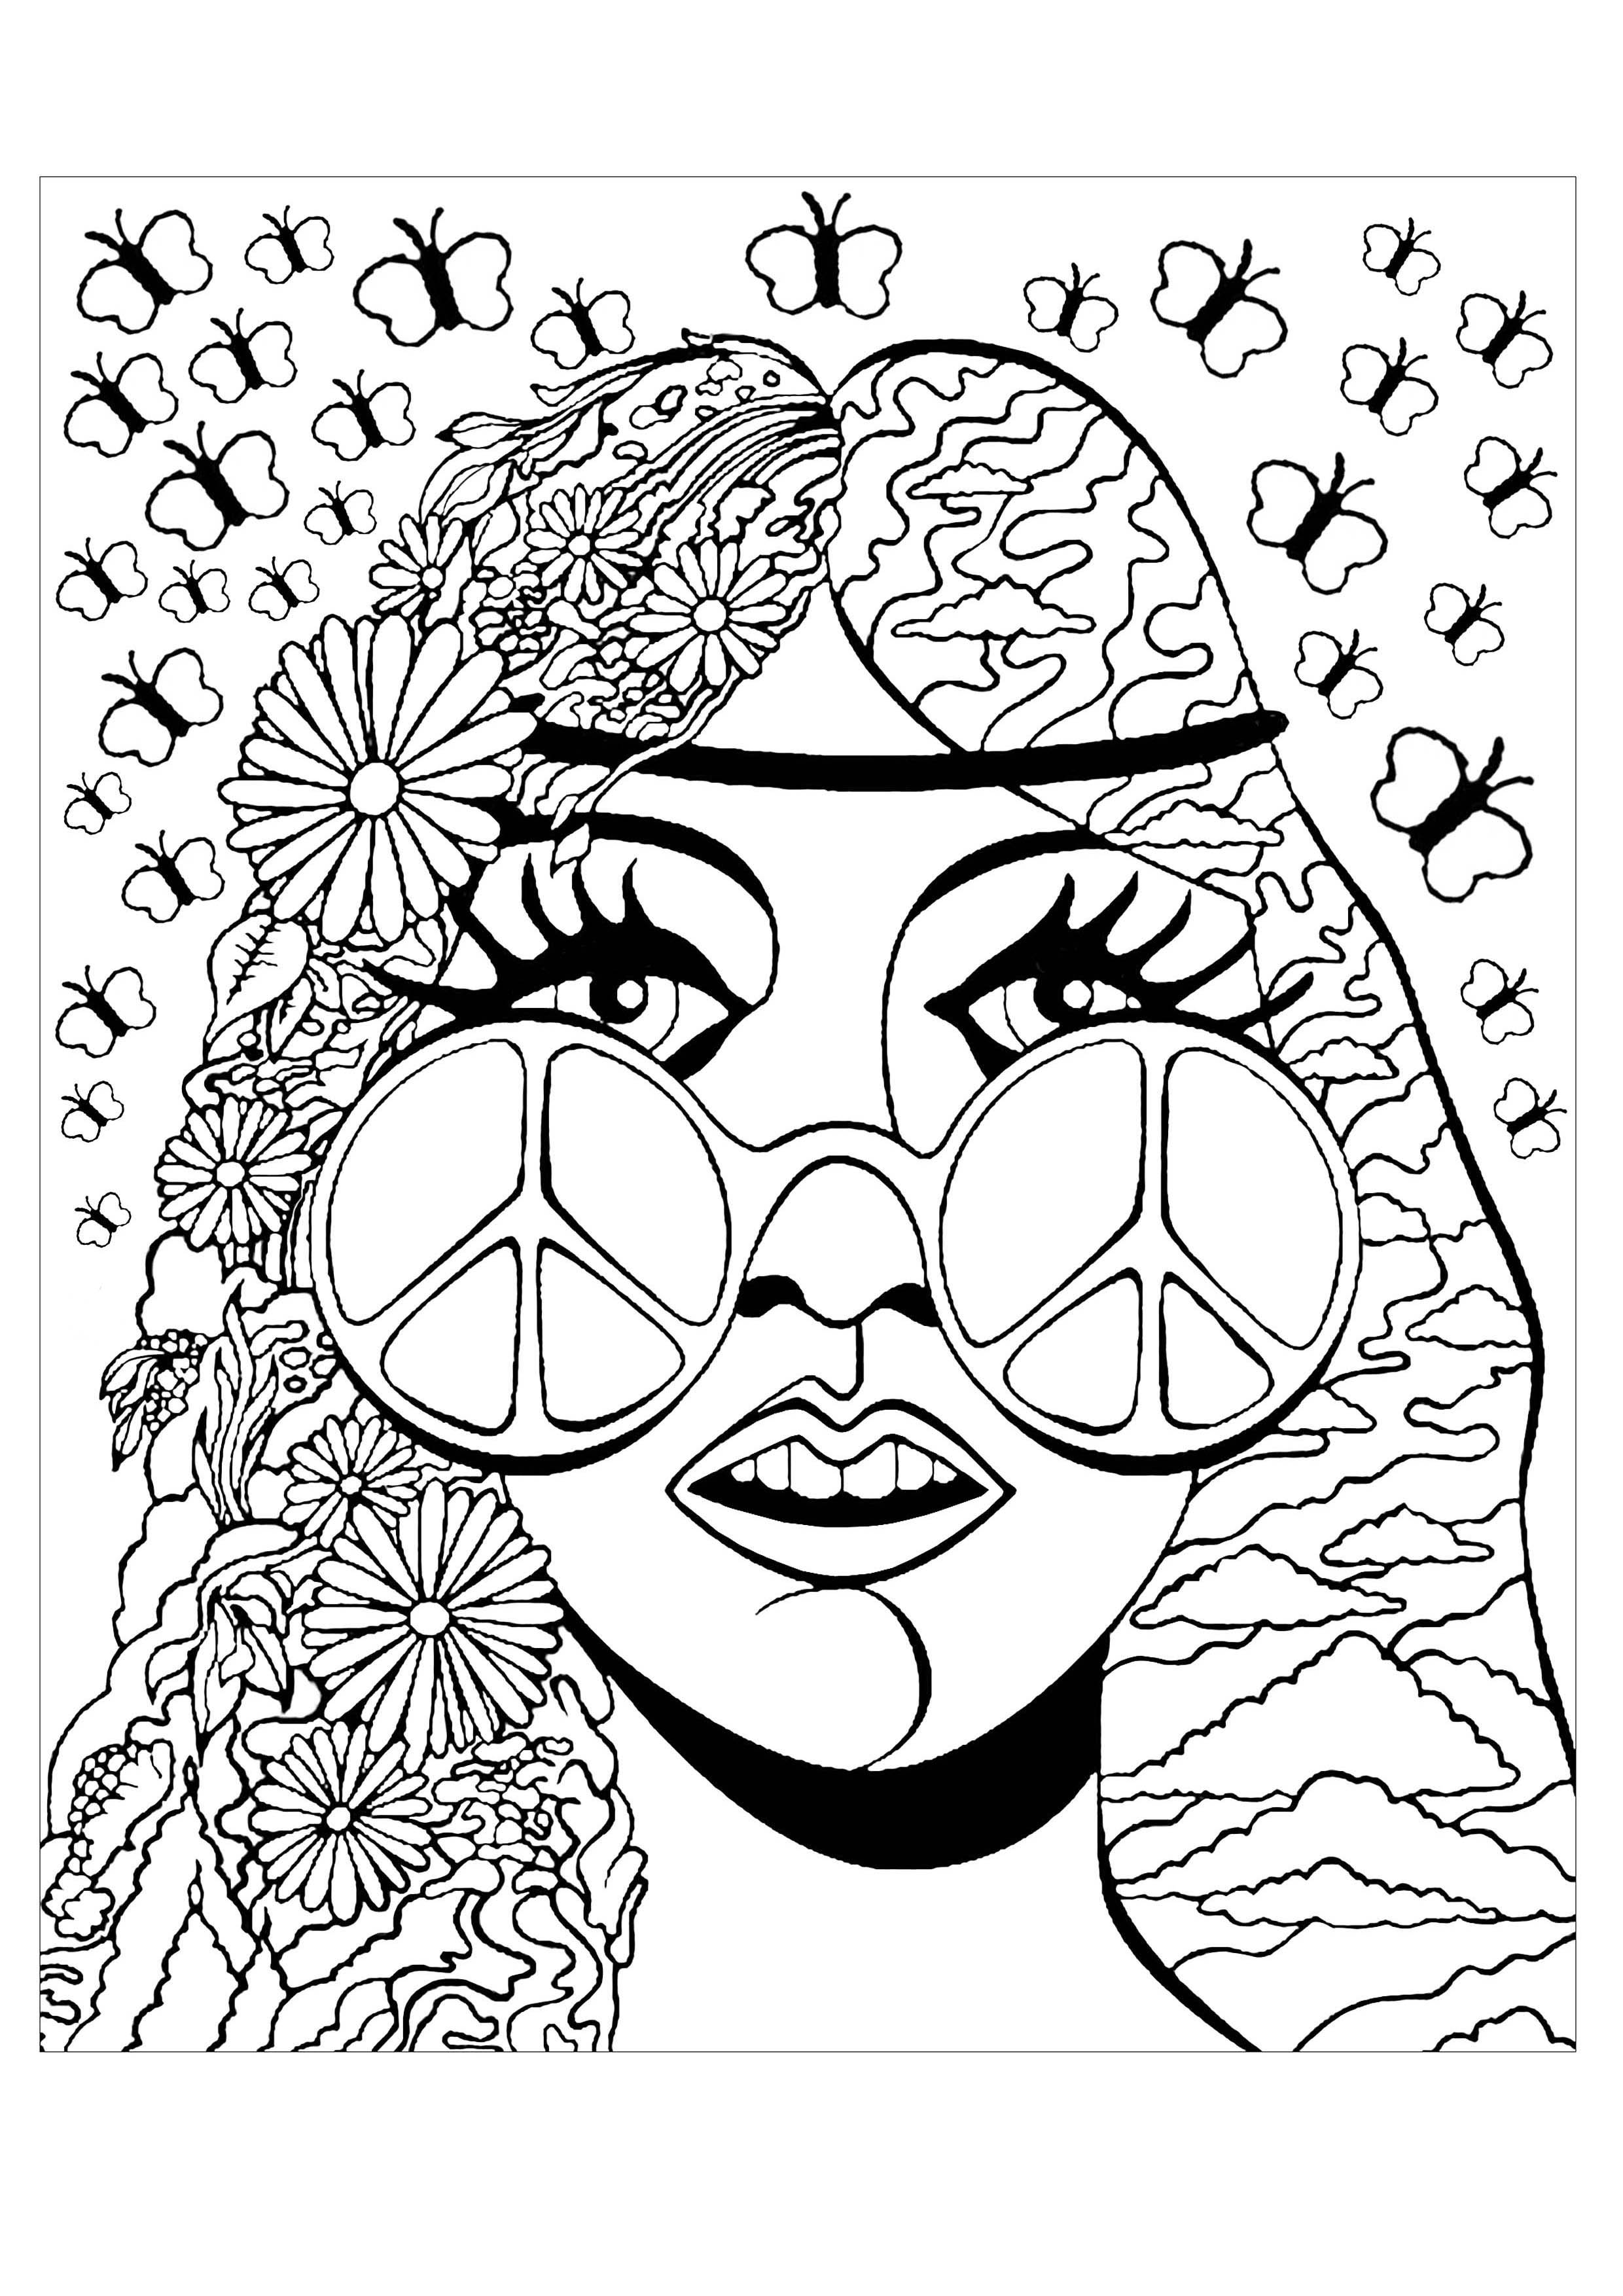 coloring pages for adults trippy trippy coloring pages for adult visual arts ideas trippy adults for coloring pages